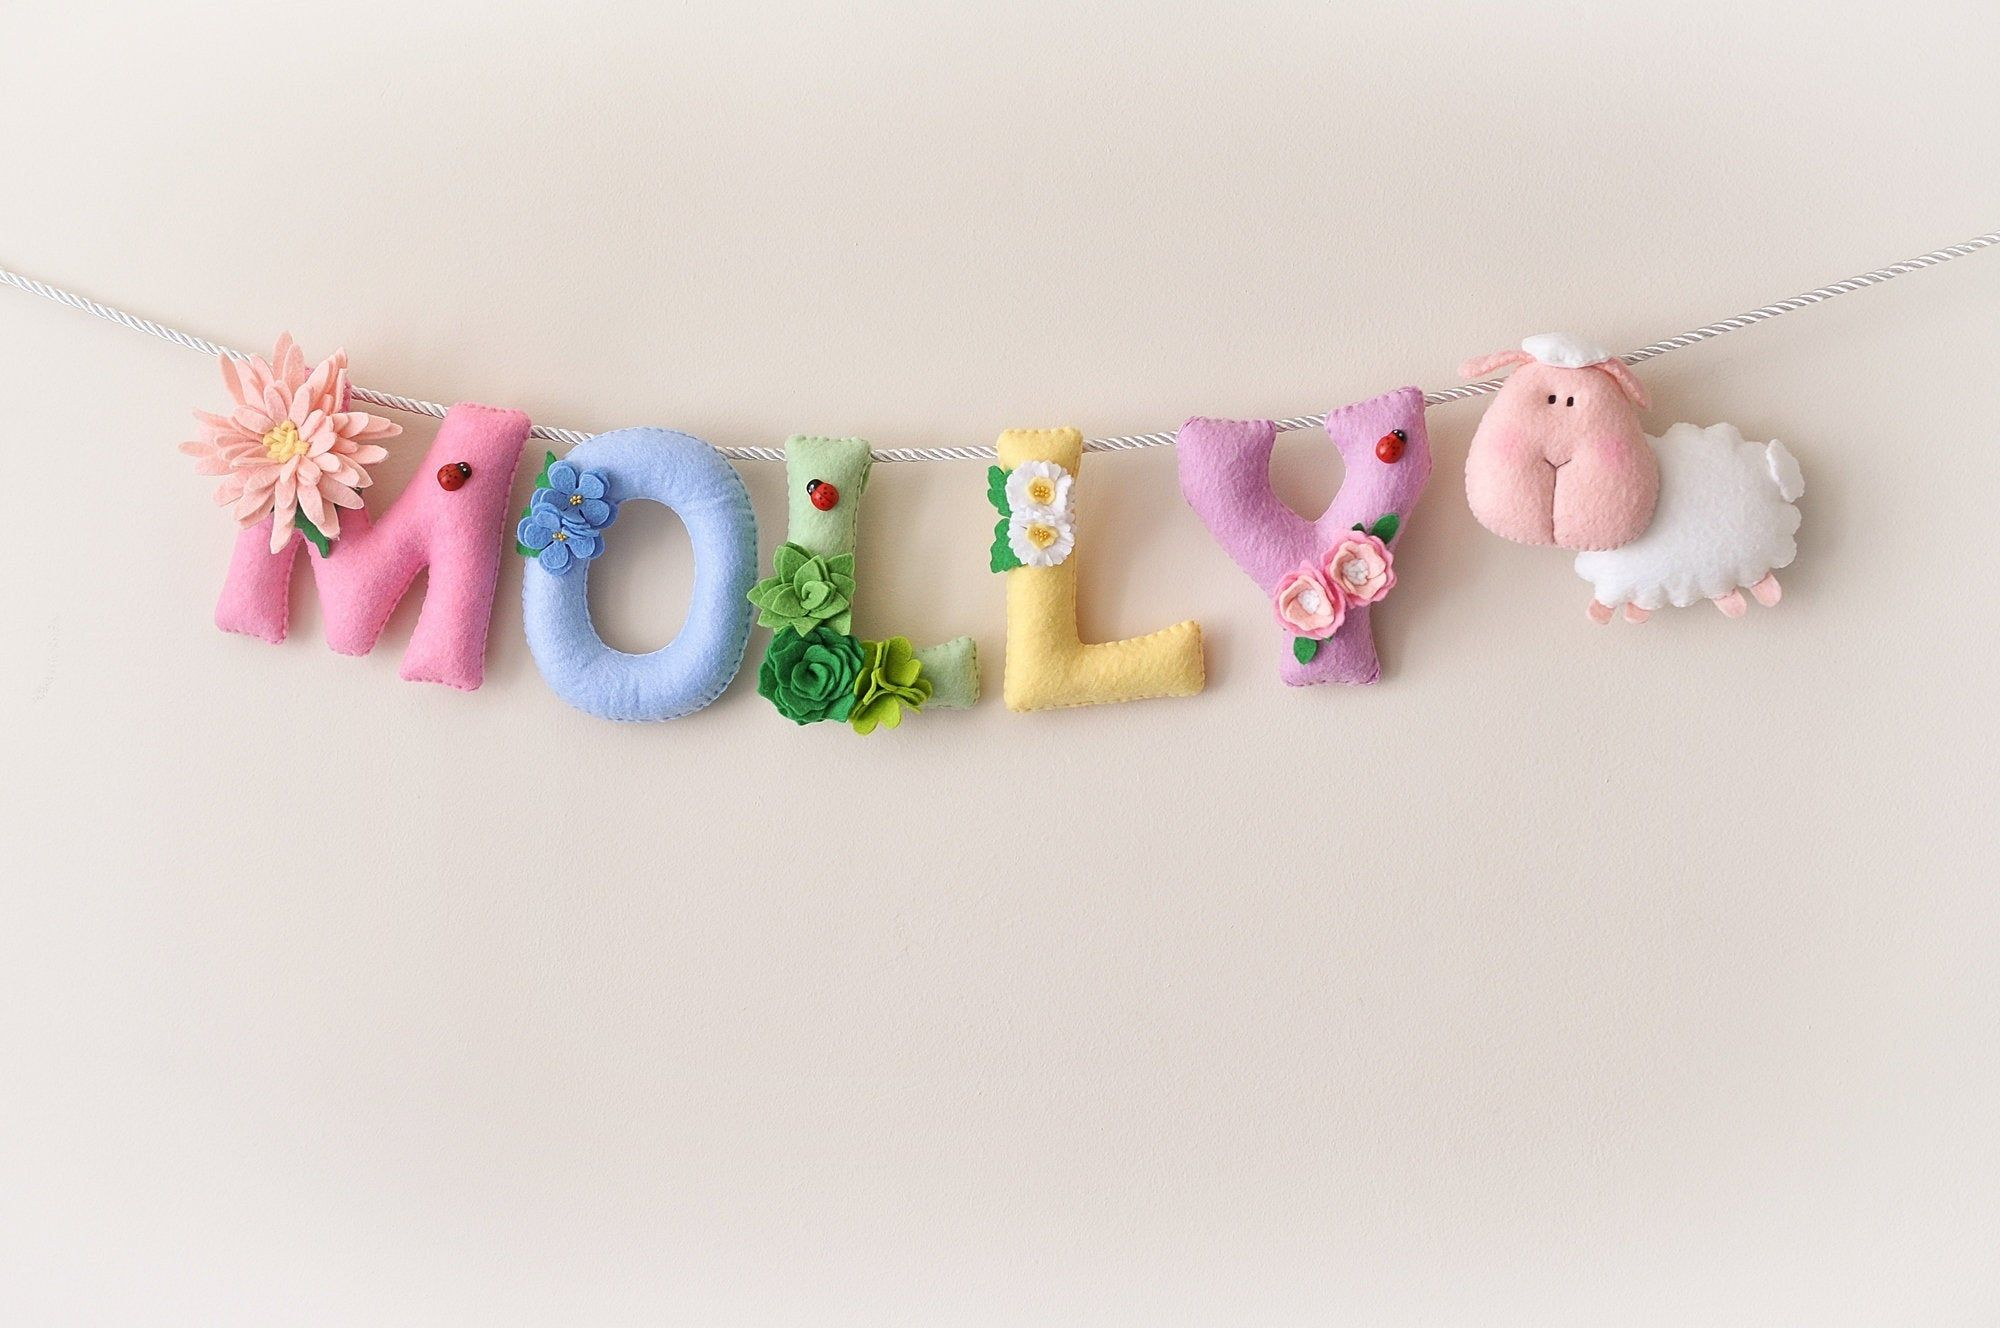 Baby Wall Art Floral Sheep Baby Decor Felt Name Banner Etsy Baby Wall Art Felt Name Banner Diy Felt Christmas Tree